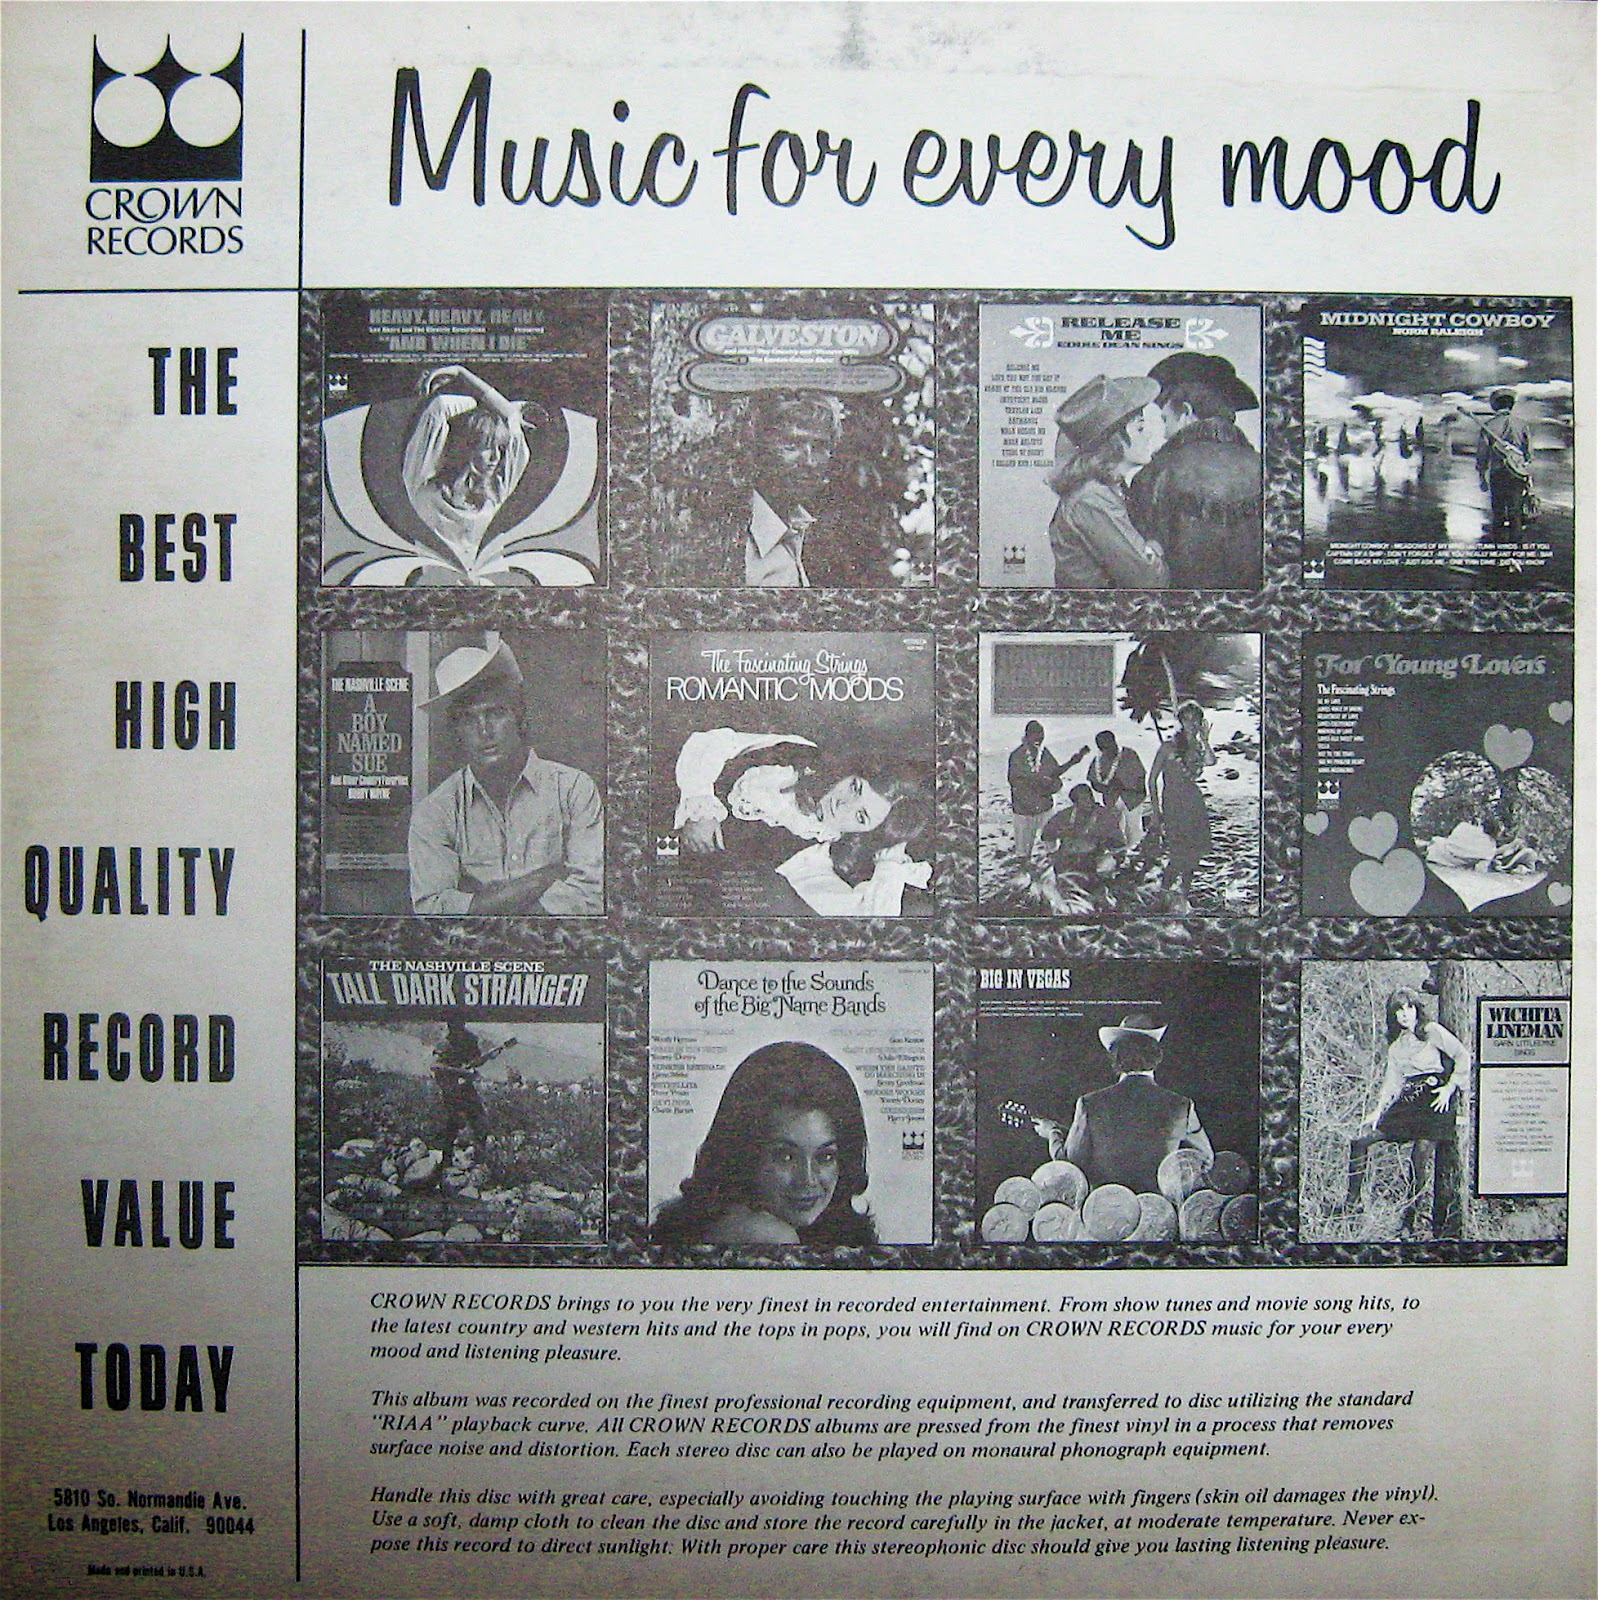 The World Of Budget Vinyl Records The Story Of Crown